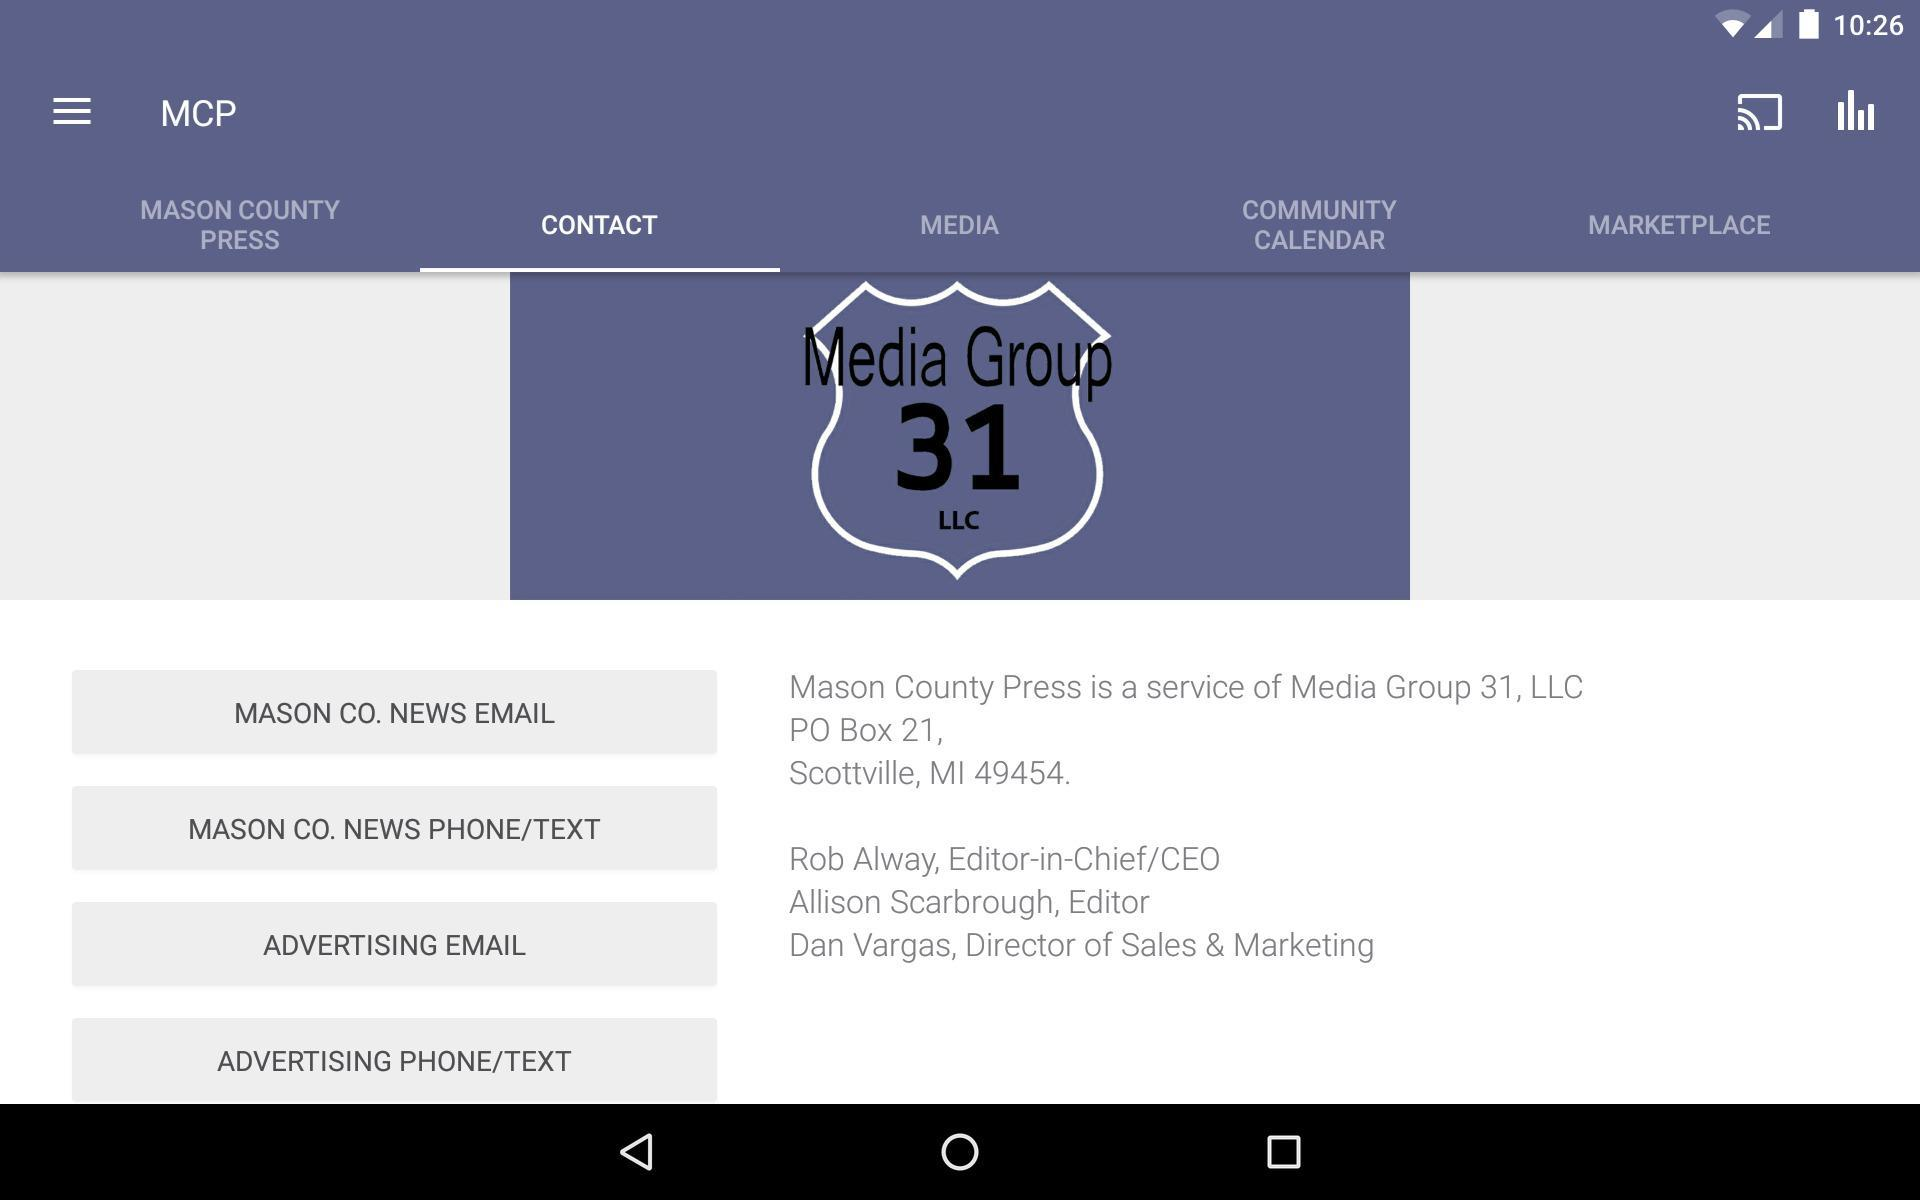 Mason County Press for Android - APK Download